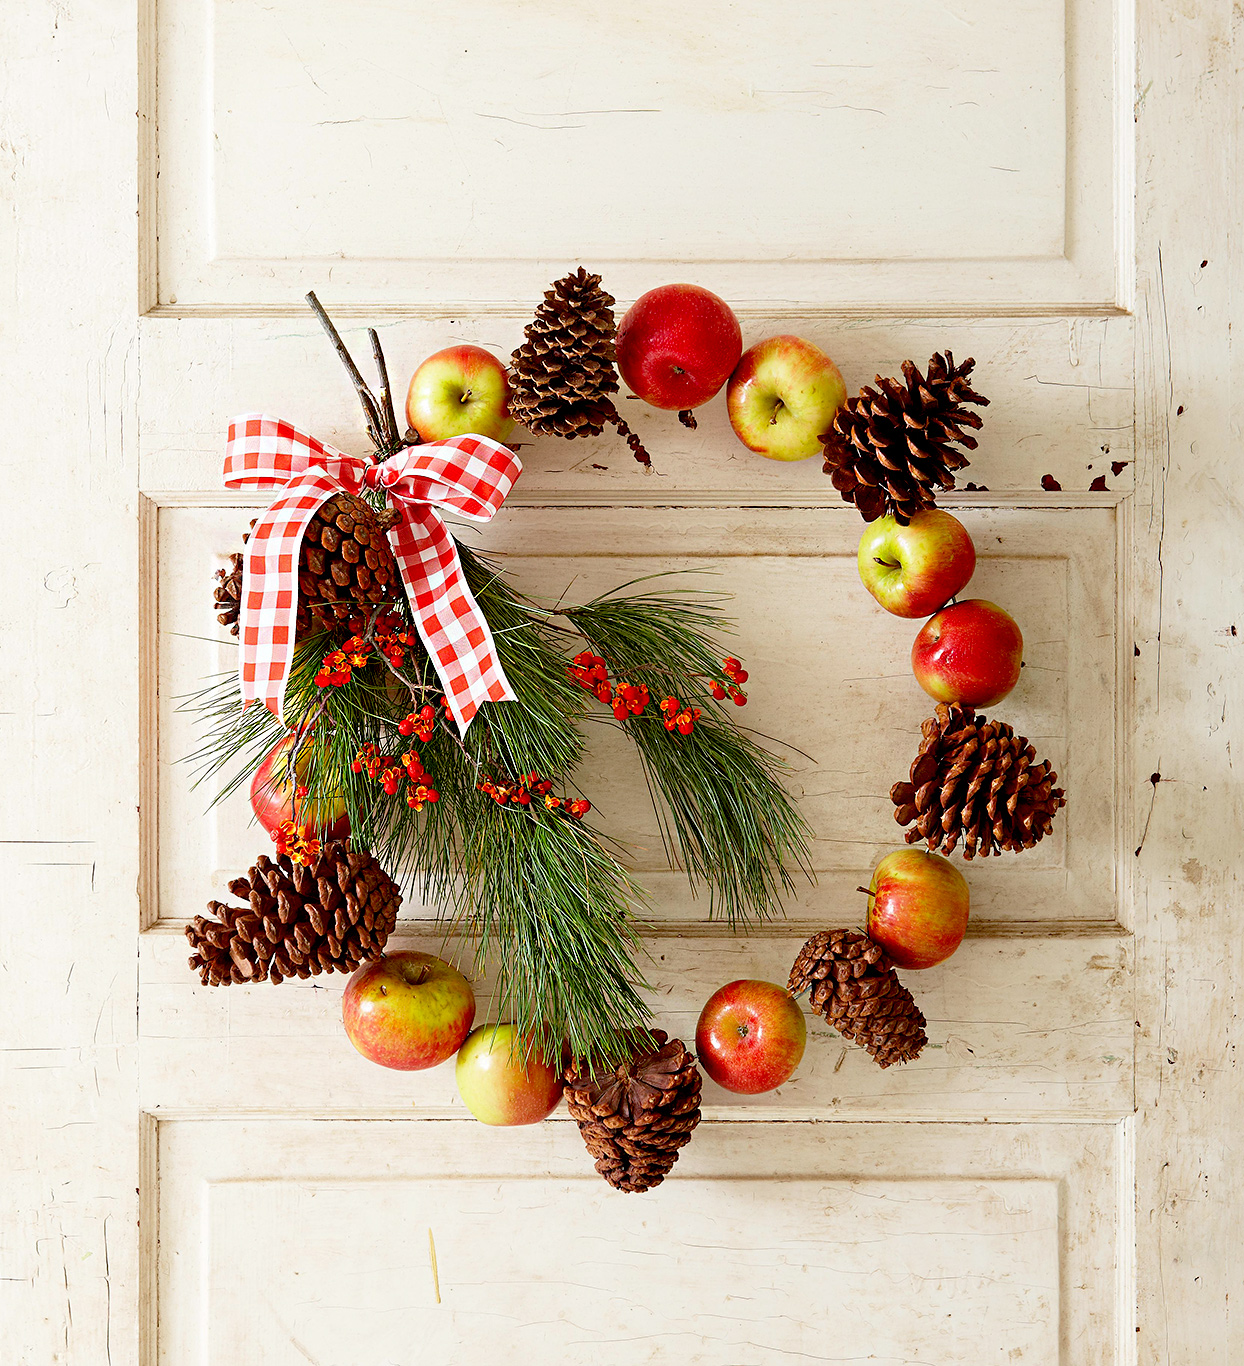 Wreath made of pinecones and apples